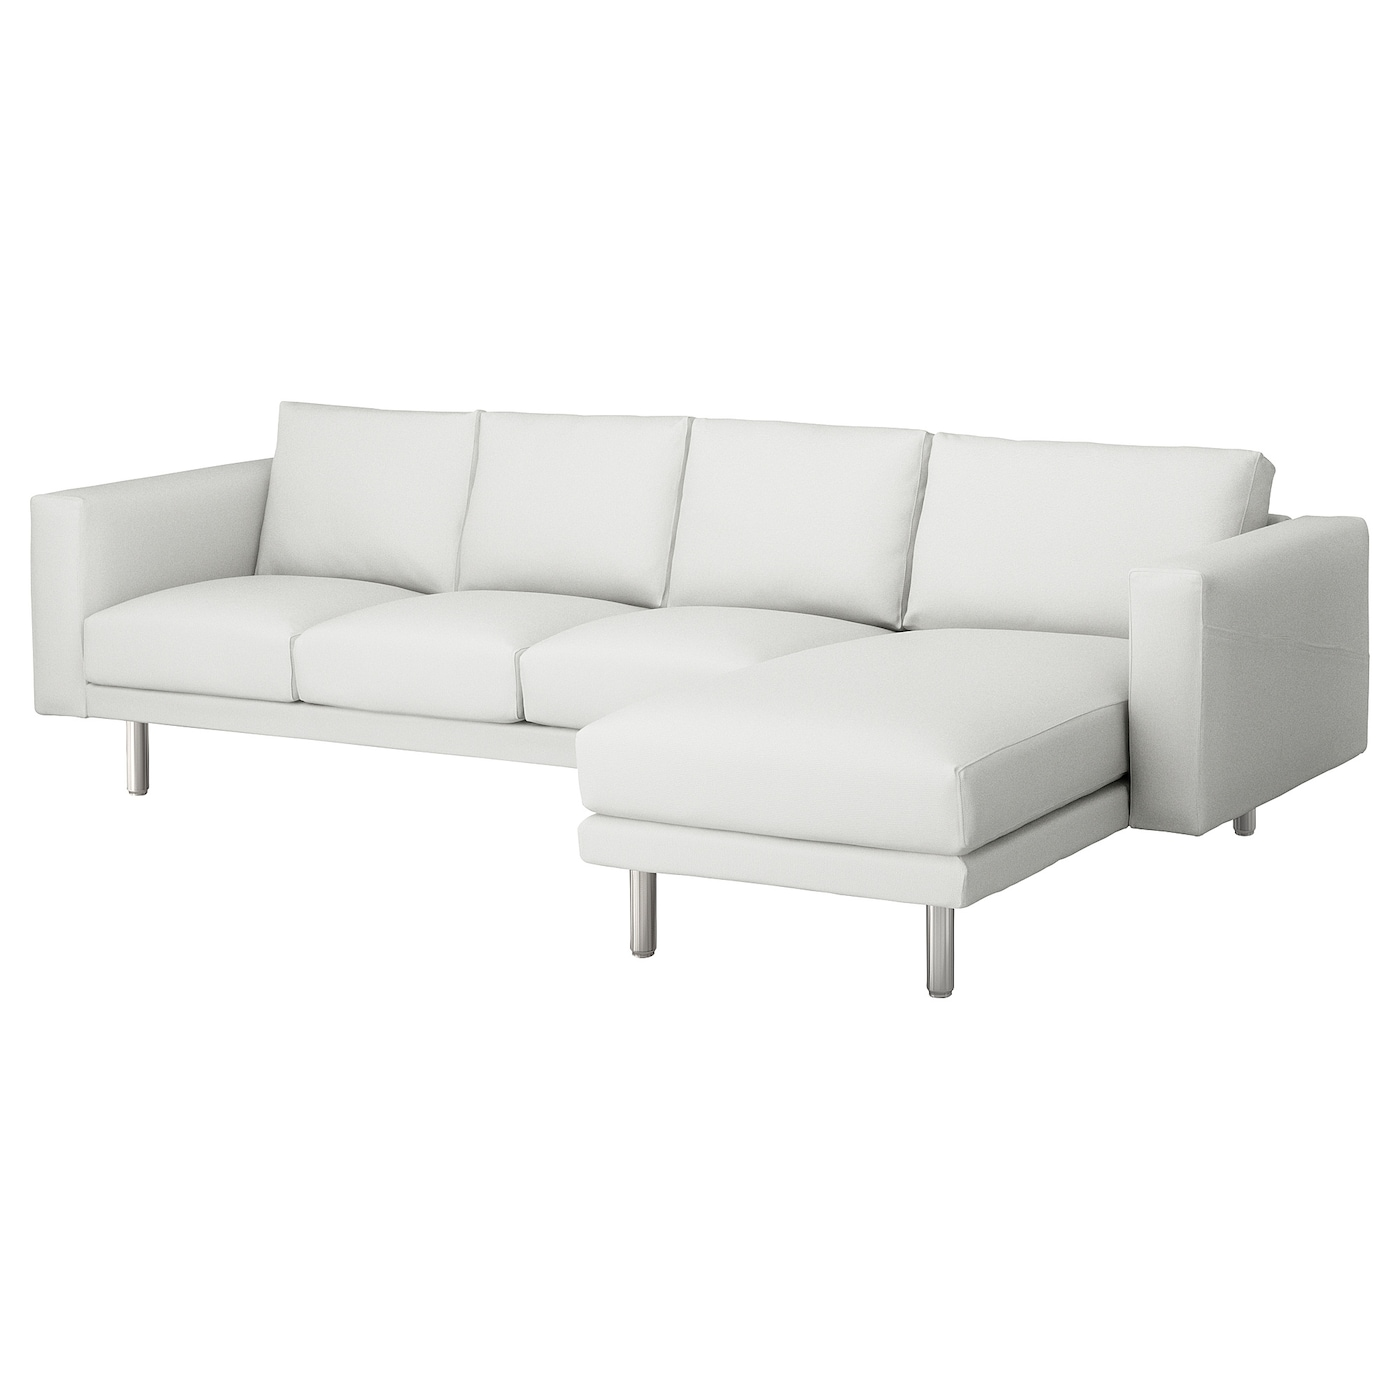 Norsborg three seat sofa and chaise longue finnsta white - Sofa rinconera con chaise longue ...